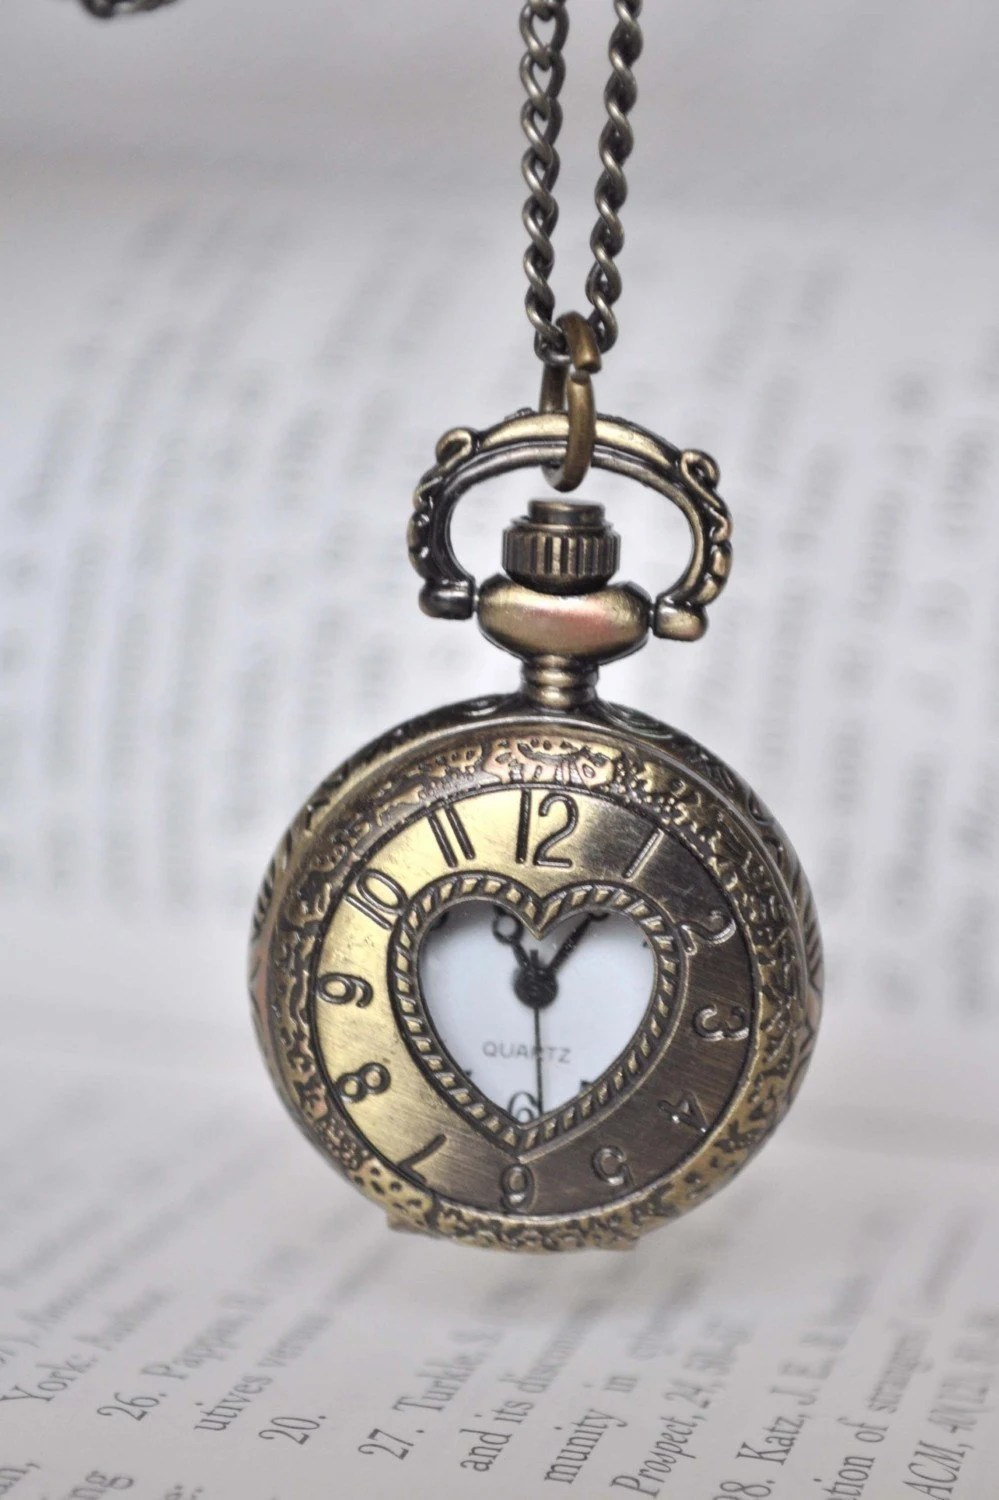 TIMELESS LOVE Victorian Style locket pocket watch pendant necklace